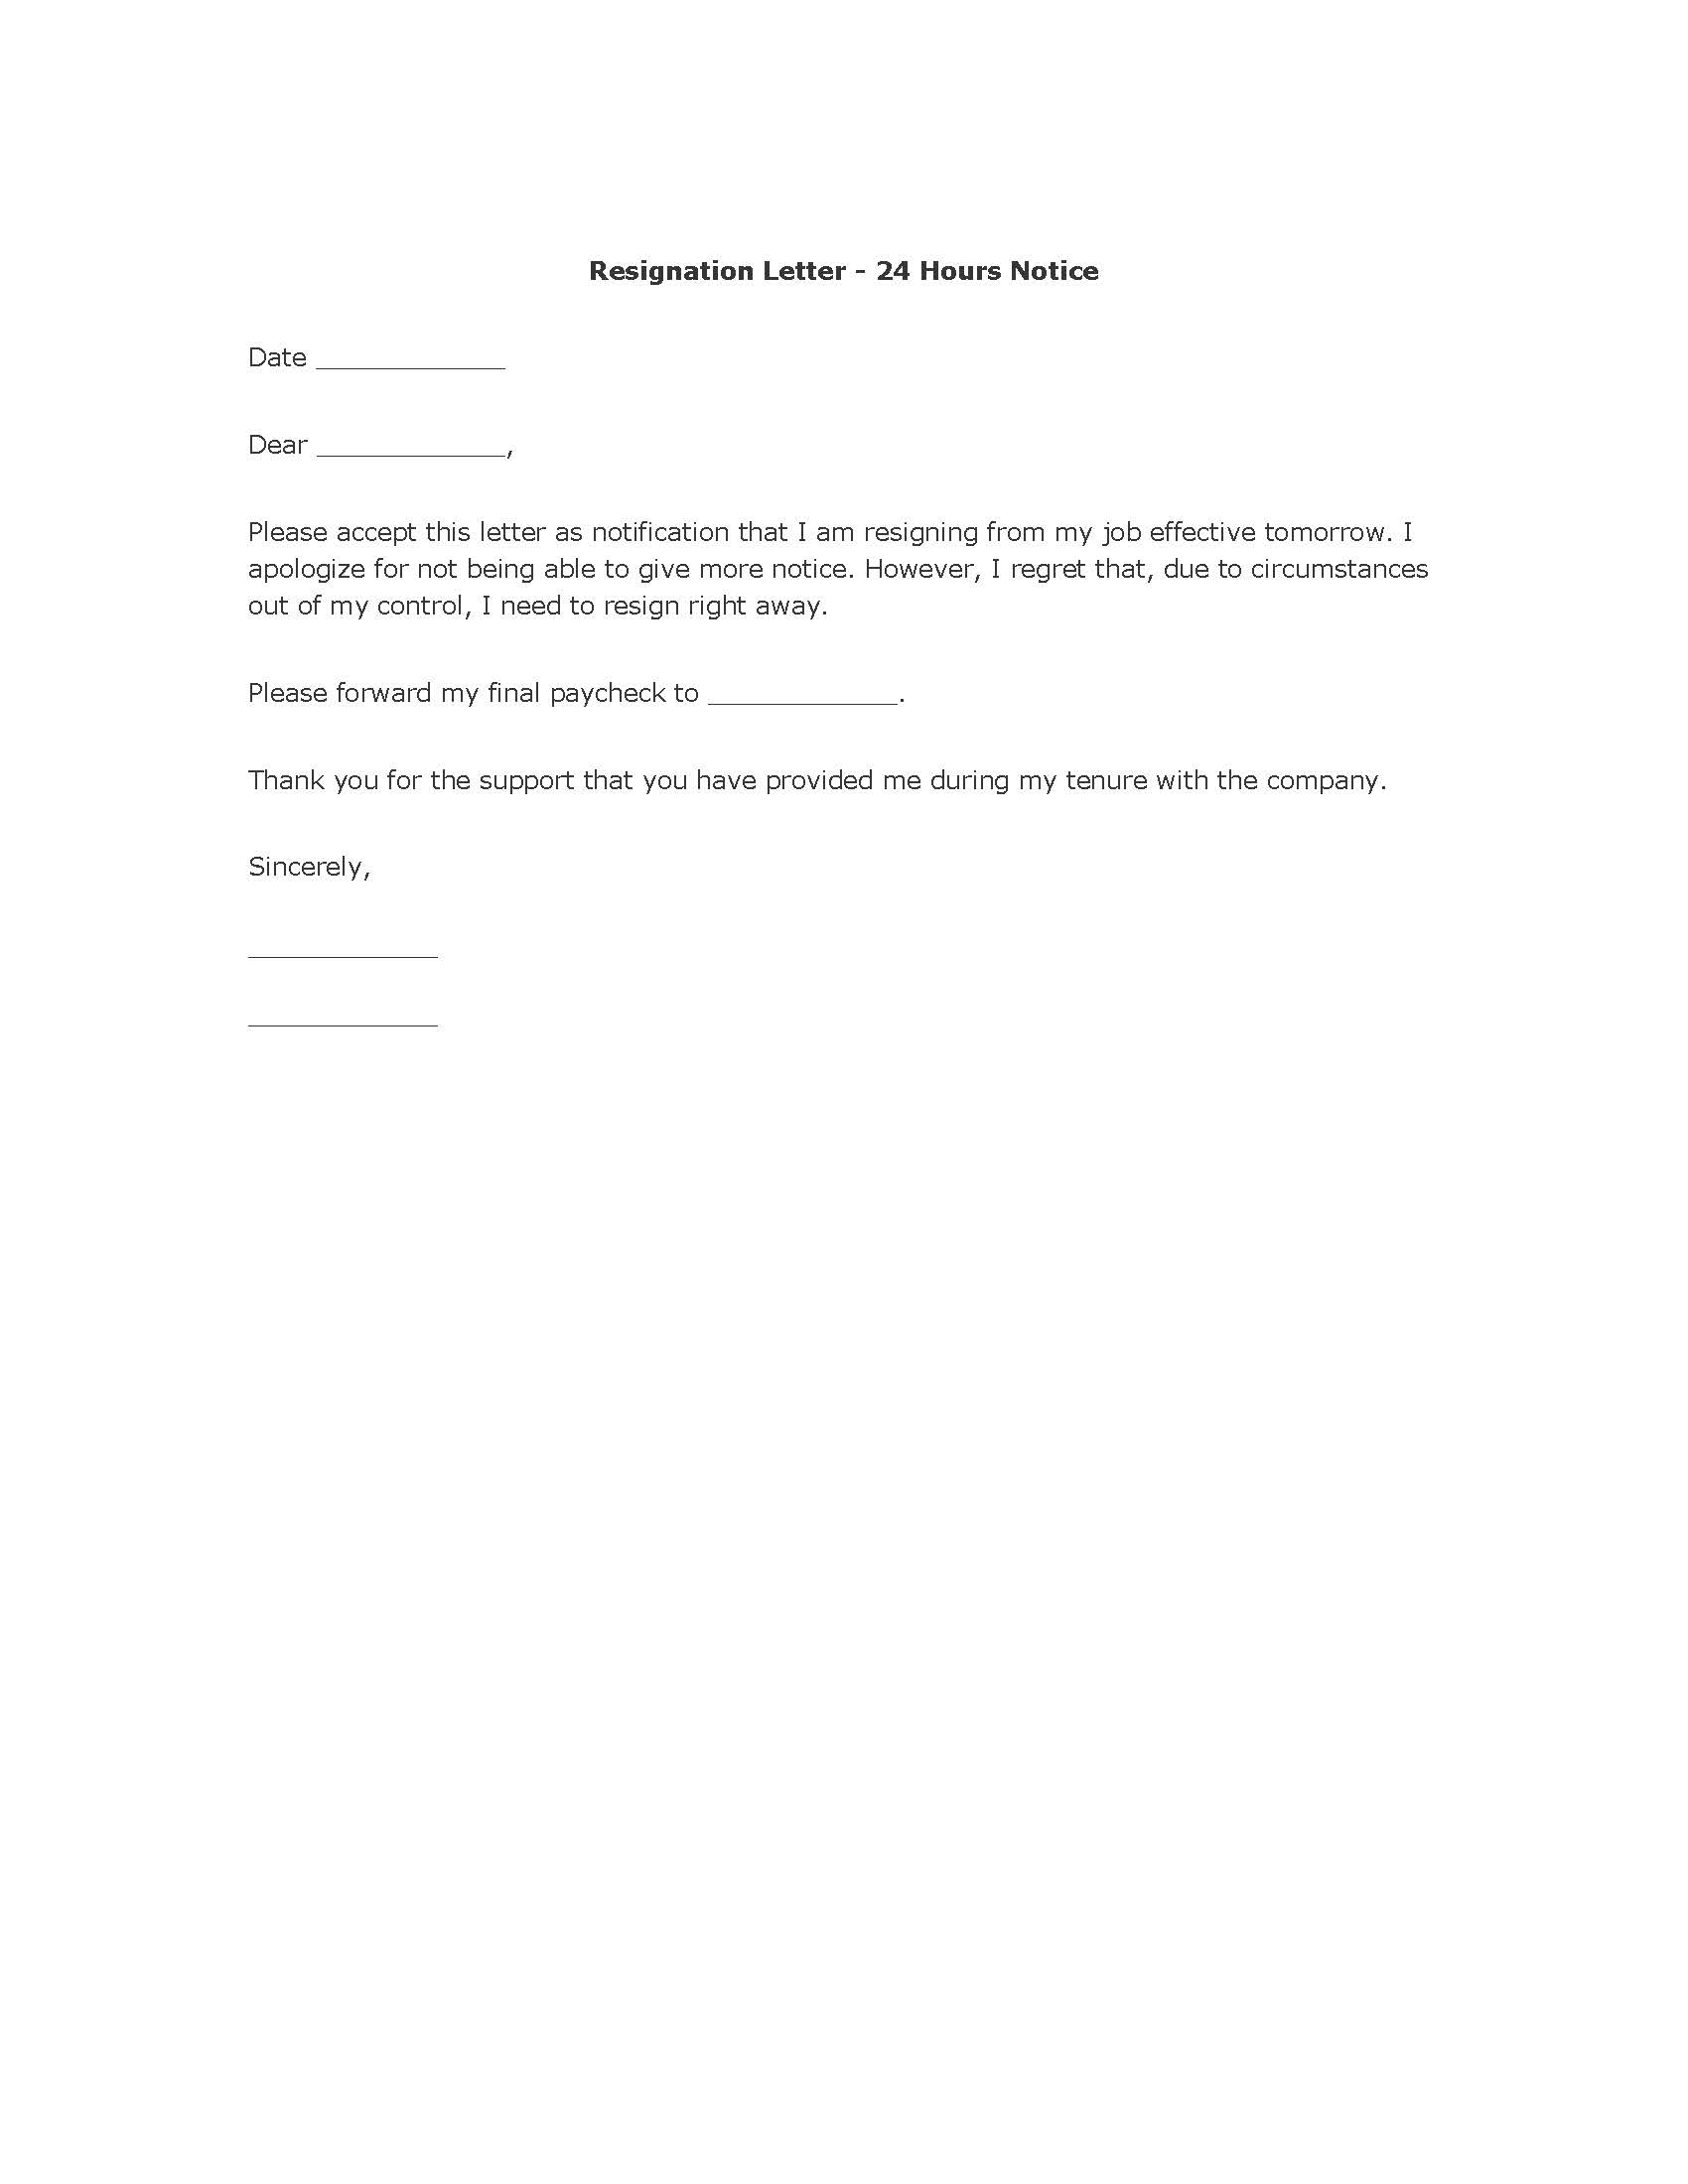 how to write a letter of resignation samples - North.fourthwall.co